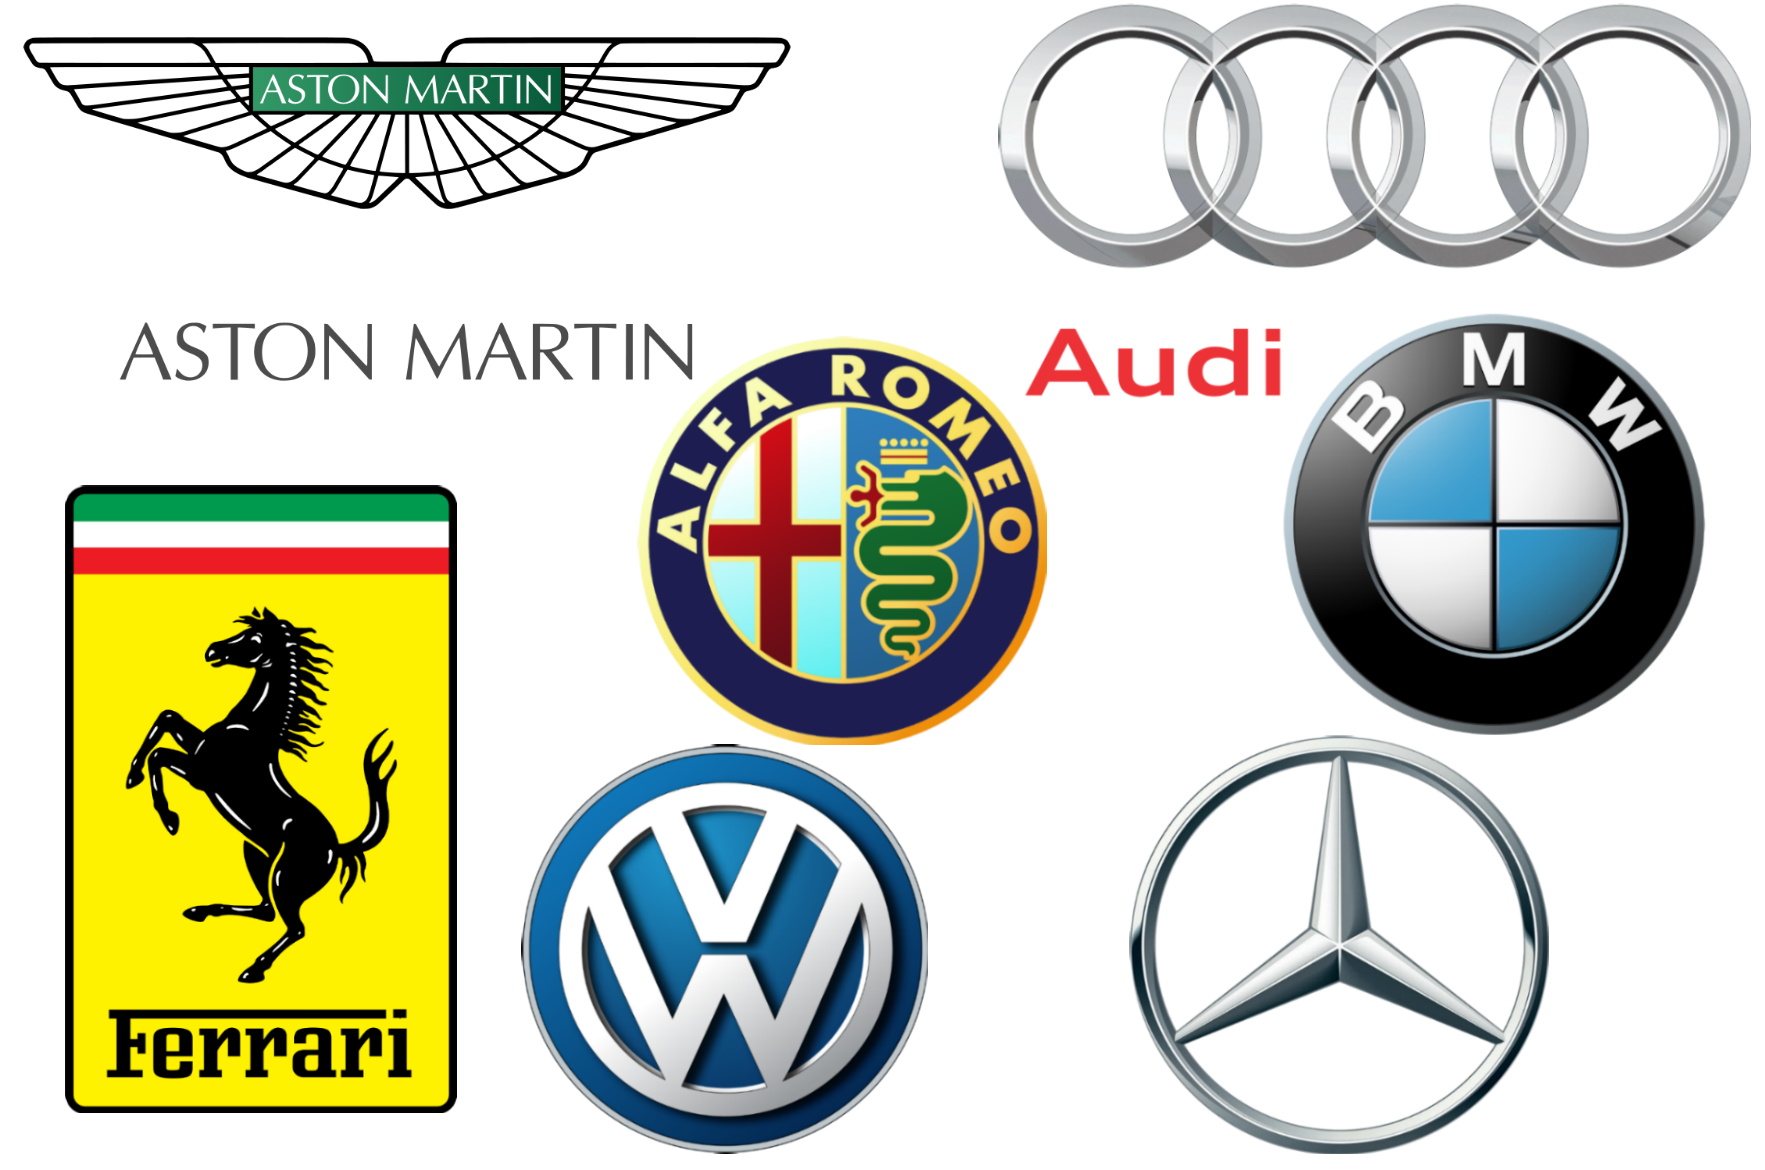 European Car Brands Companies And Manufacturers Brand Namescom Wiring Diagram Symbols Logos